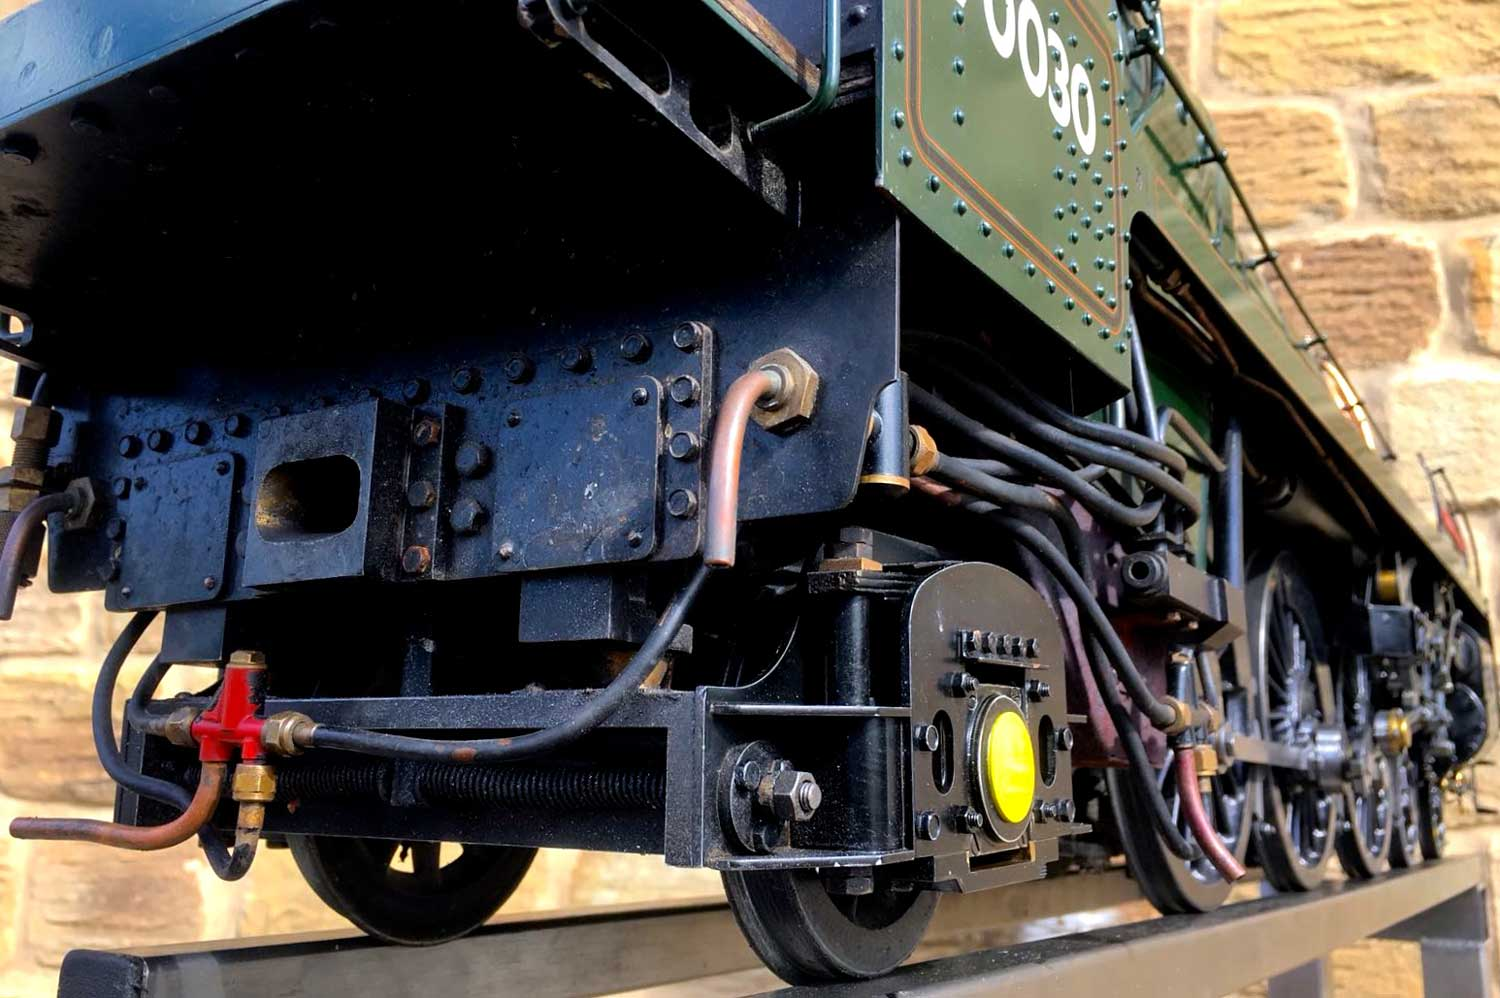 test 3-and-a-half-inch-BR-9F-OS-live-steam-locomotive-for-sale-26